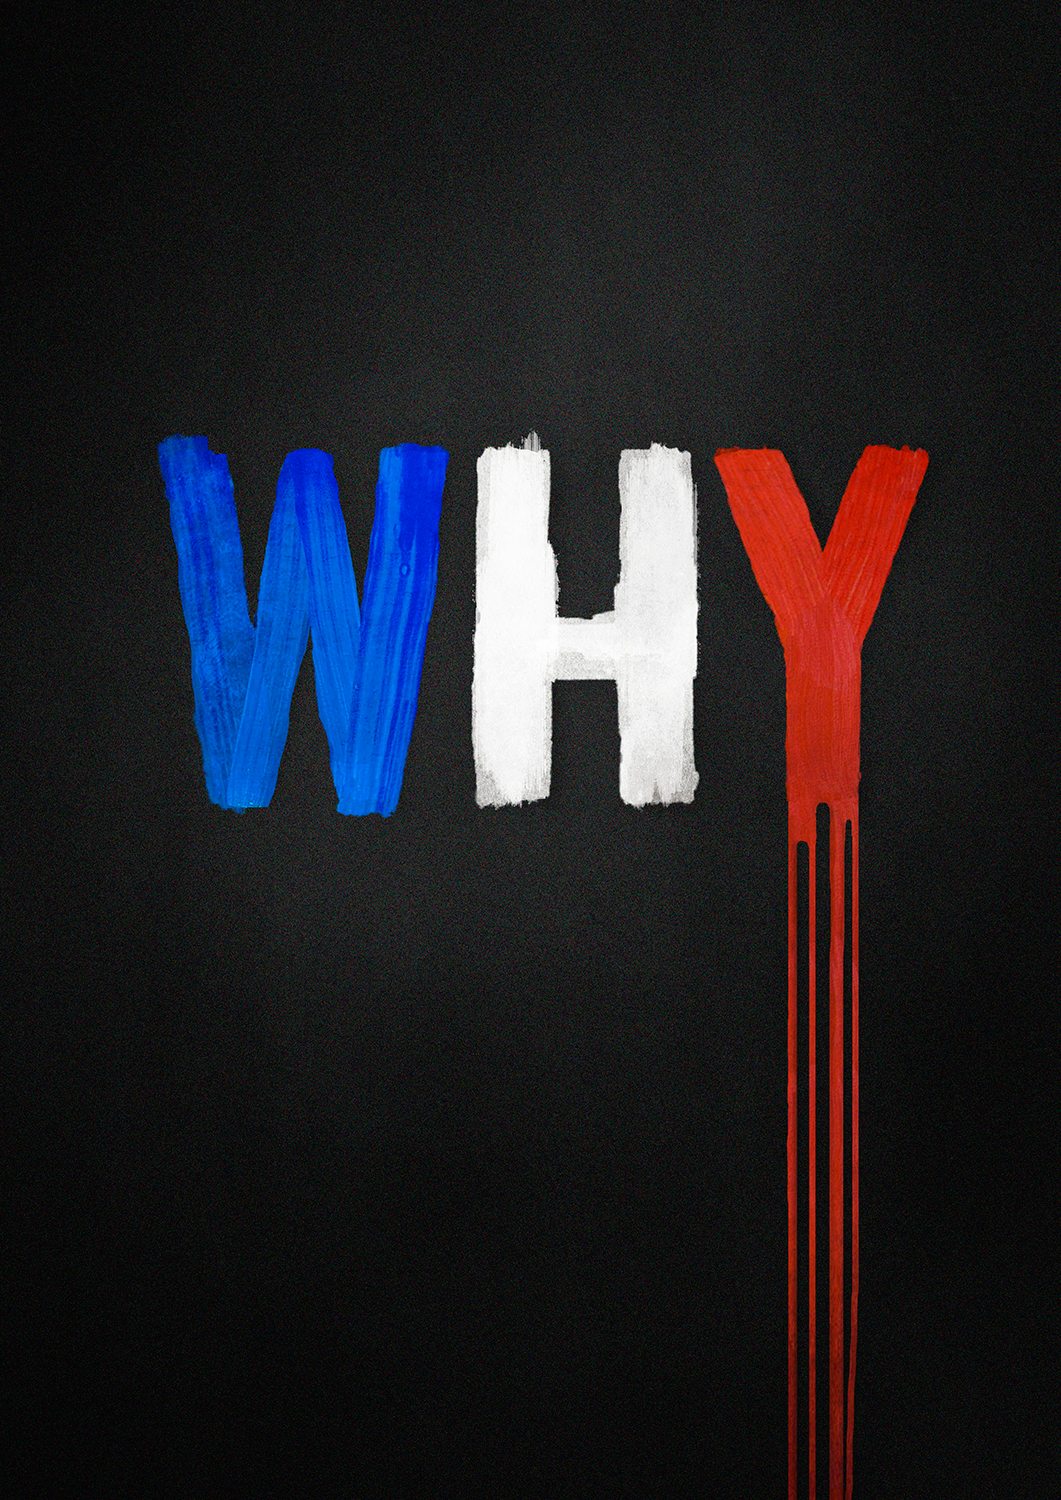 Why_web